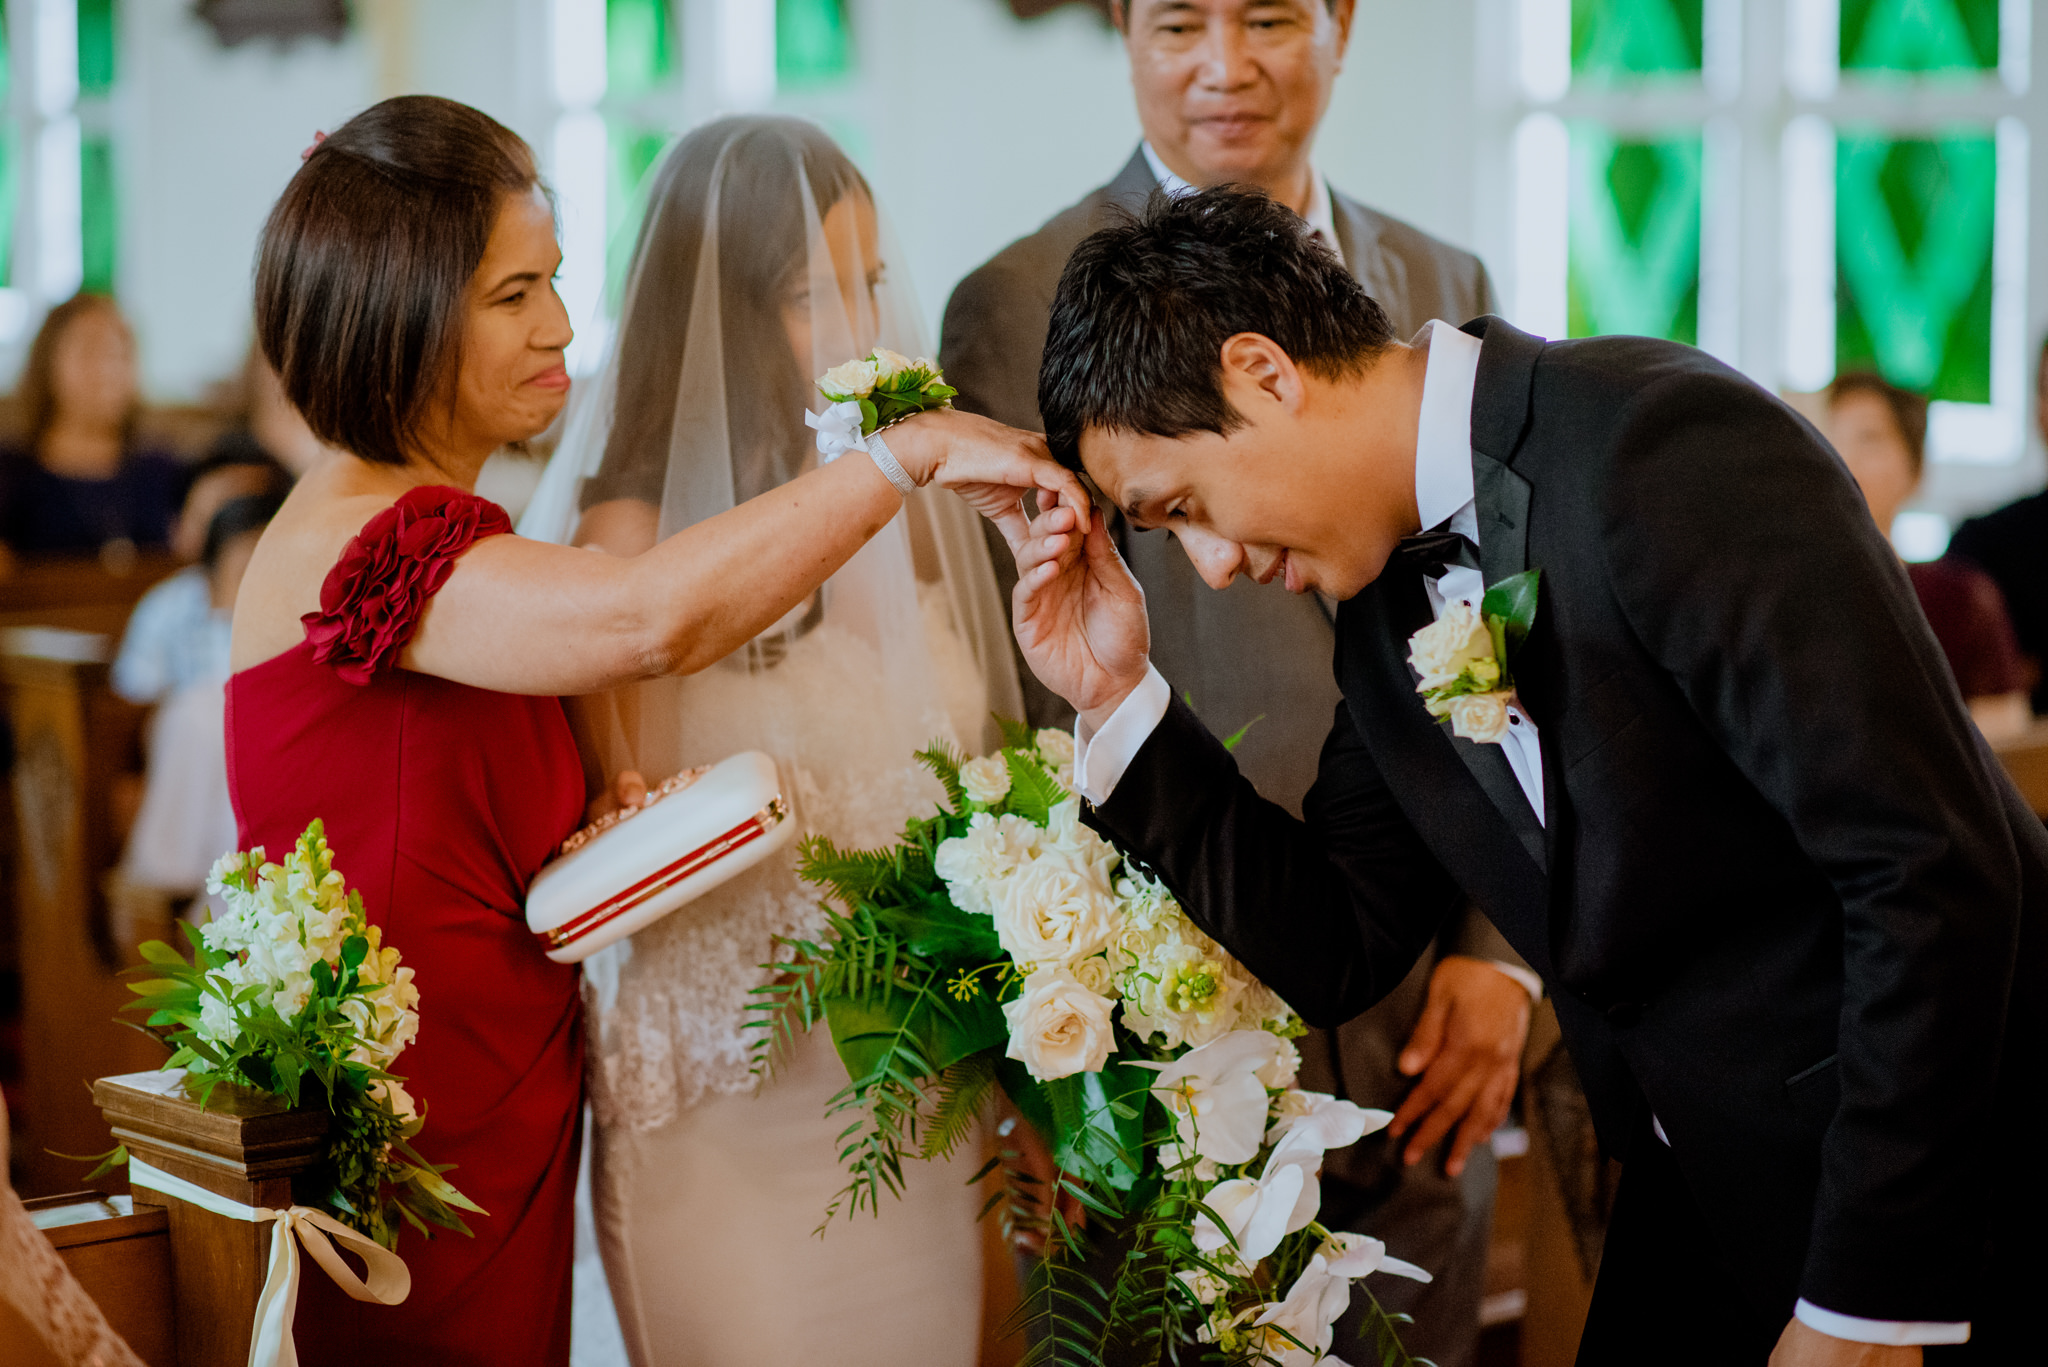 Groom greets mother of the bride by placing her hand on his forehead